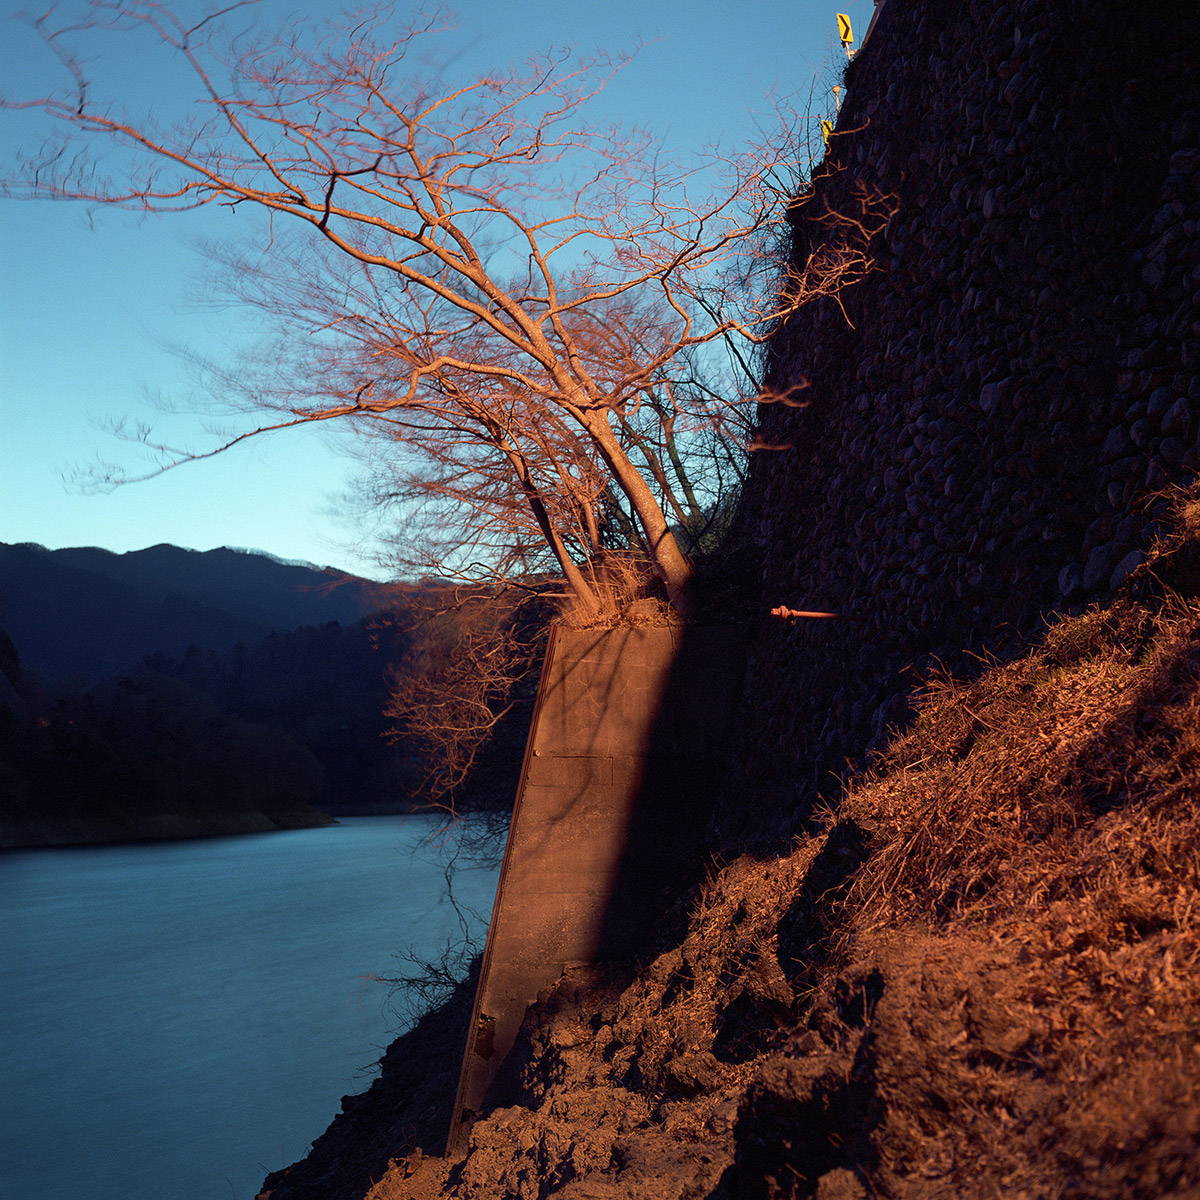 """The Riverbed"" by Photographer Kentaro Takahashi"